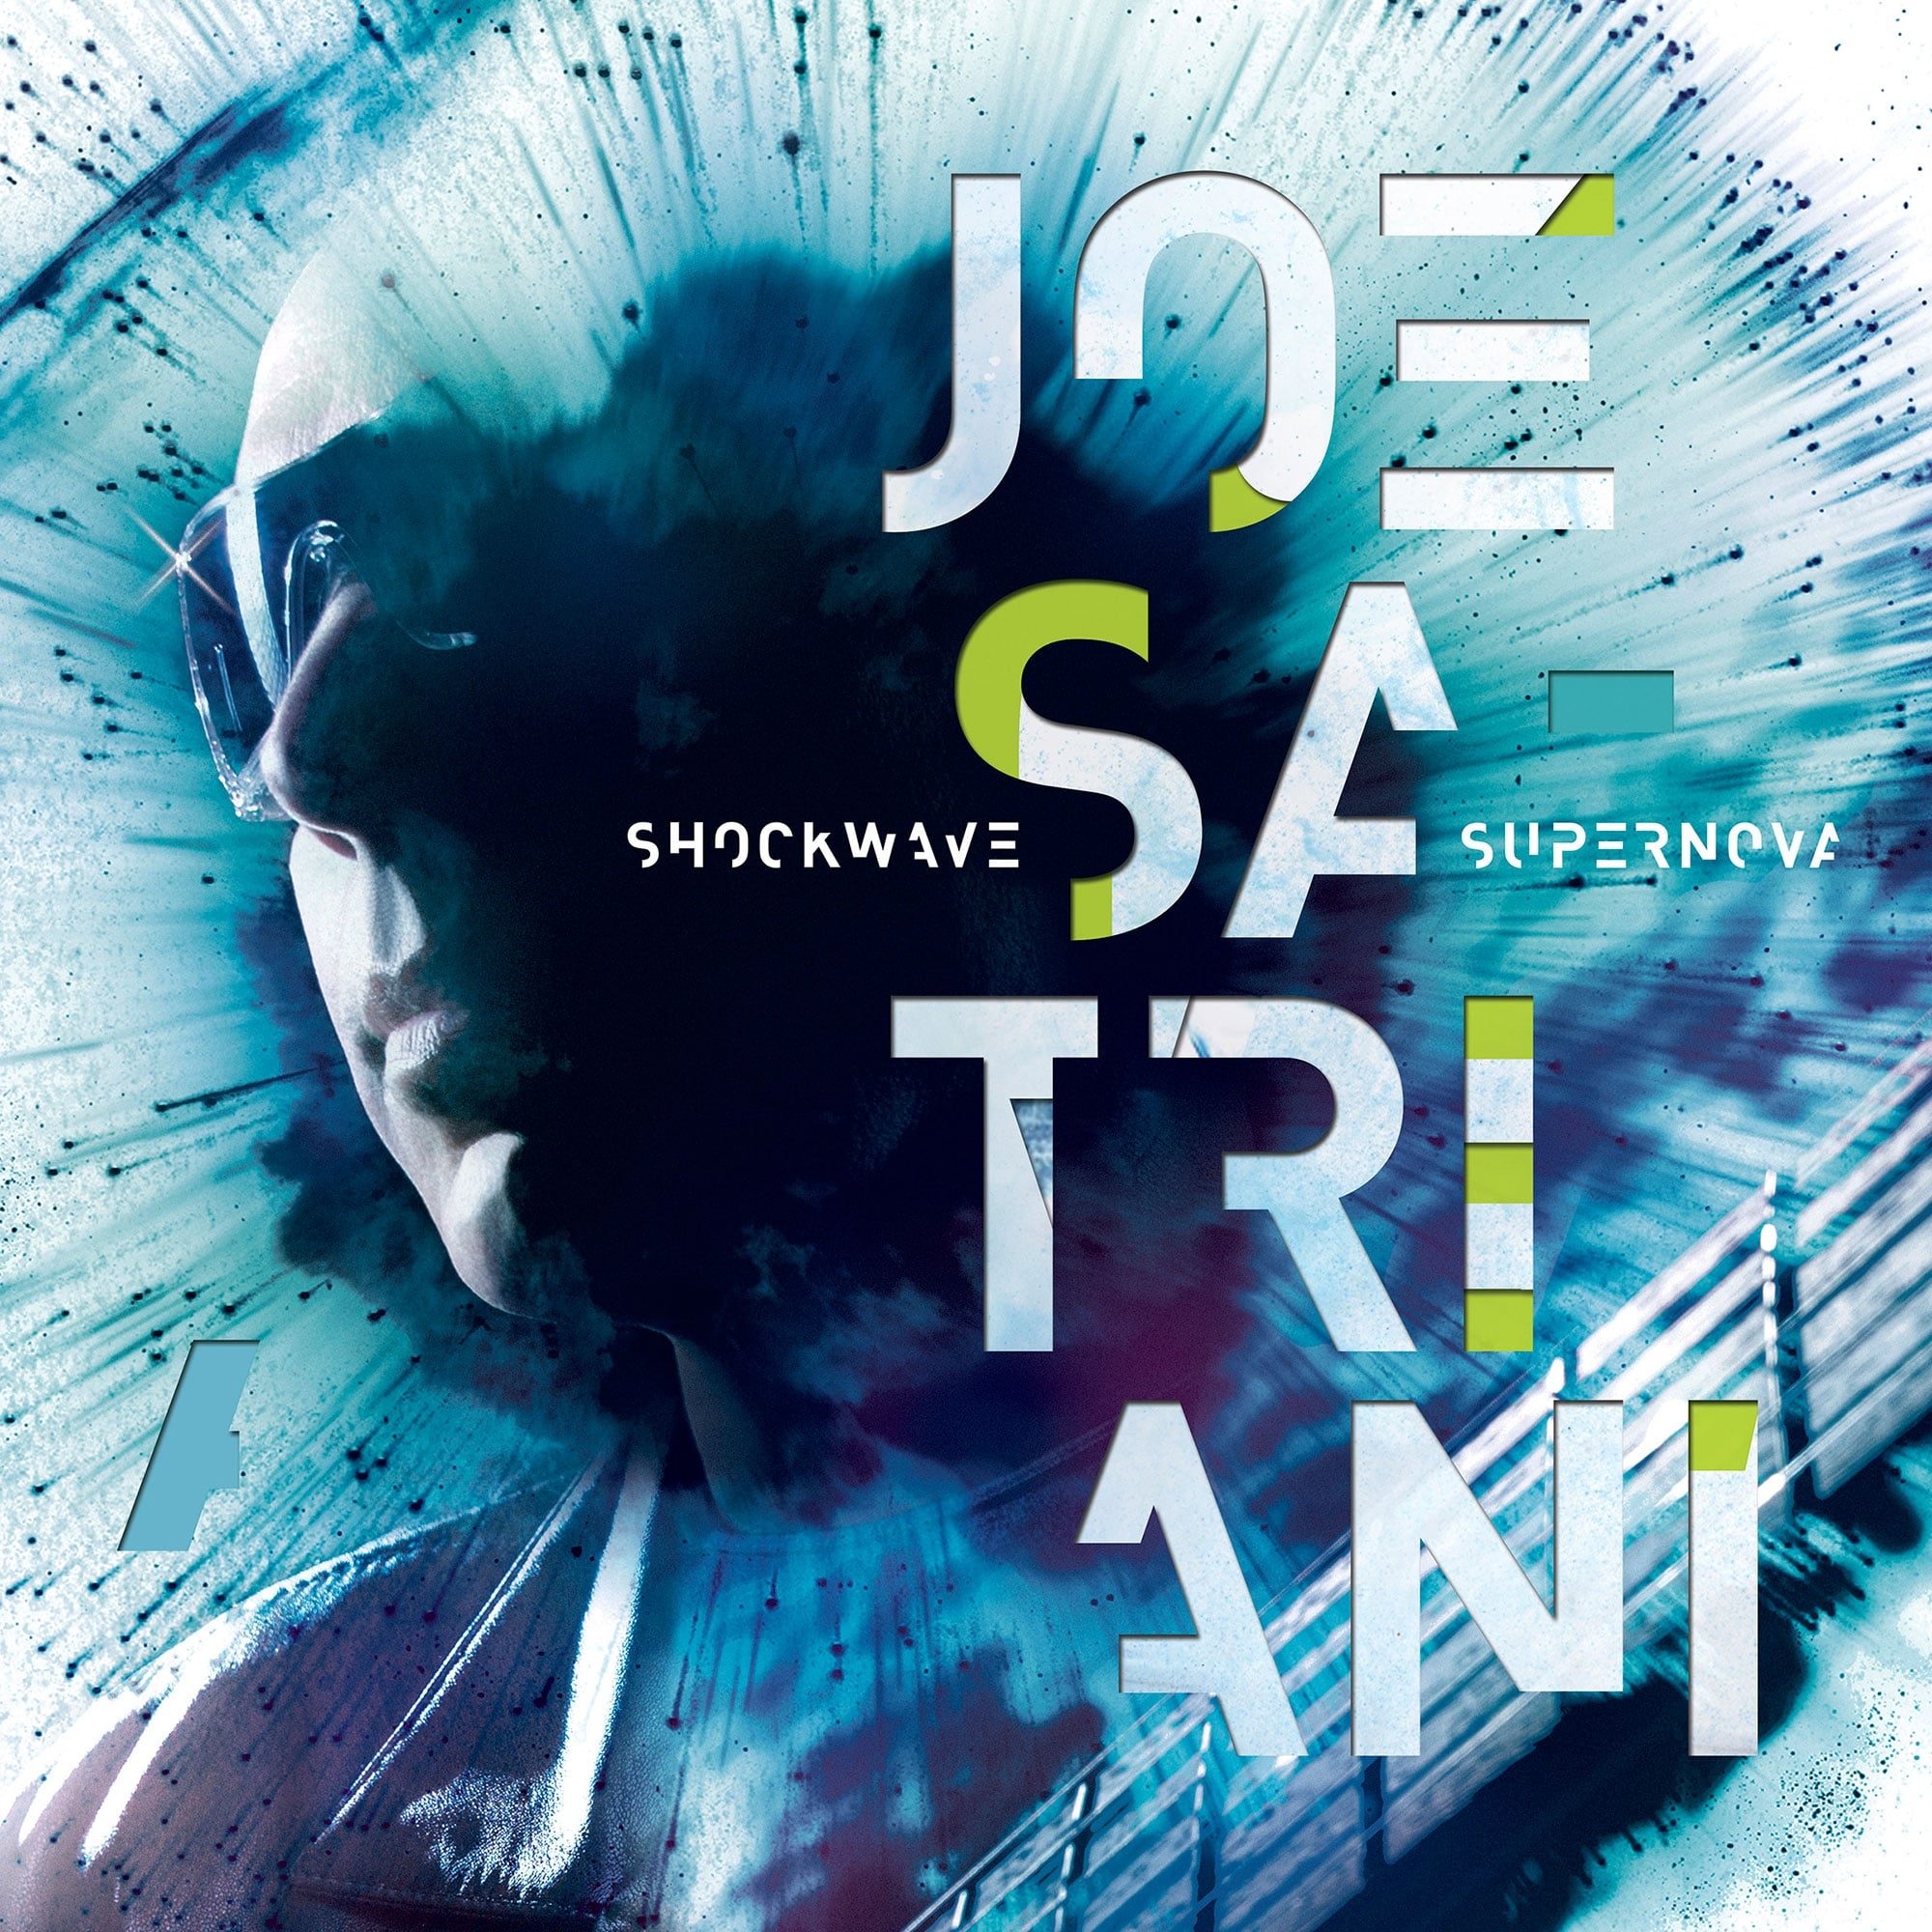 shockwave supernova joe satriani 2015 album cd record